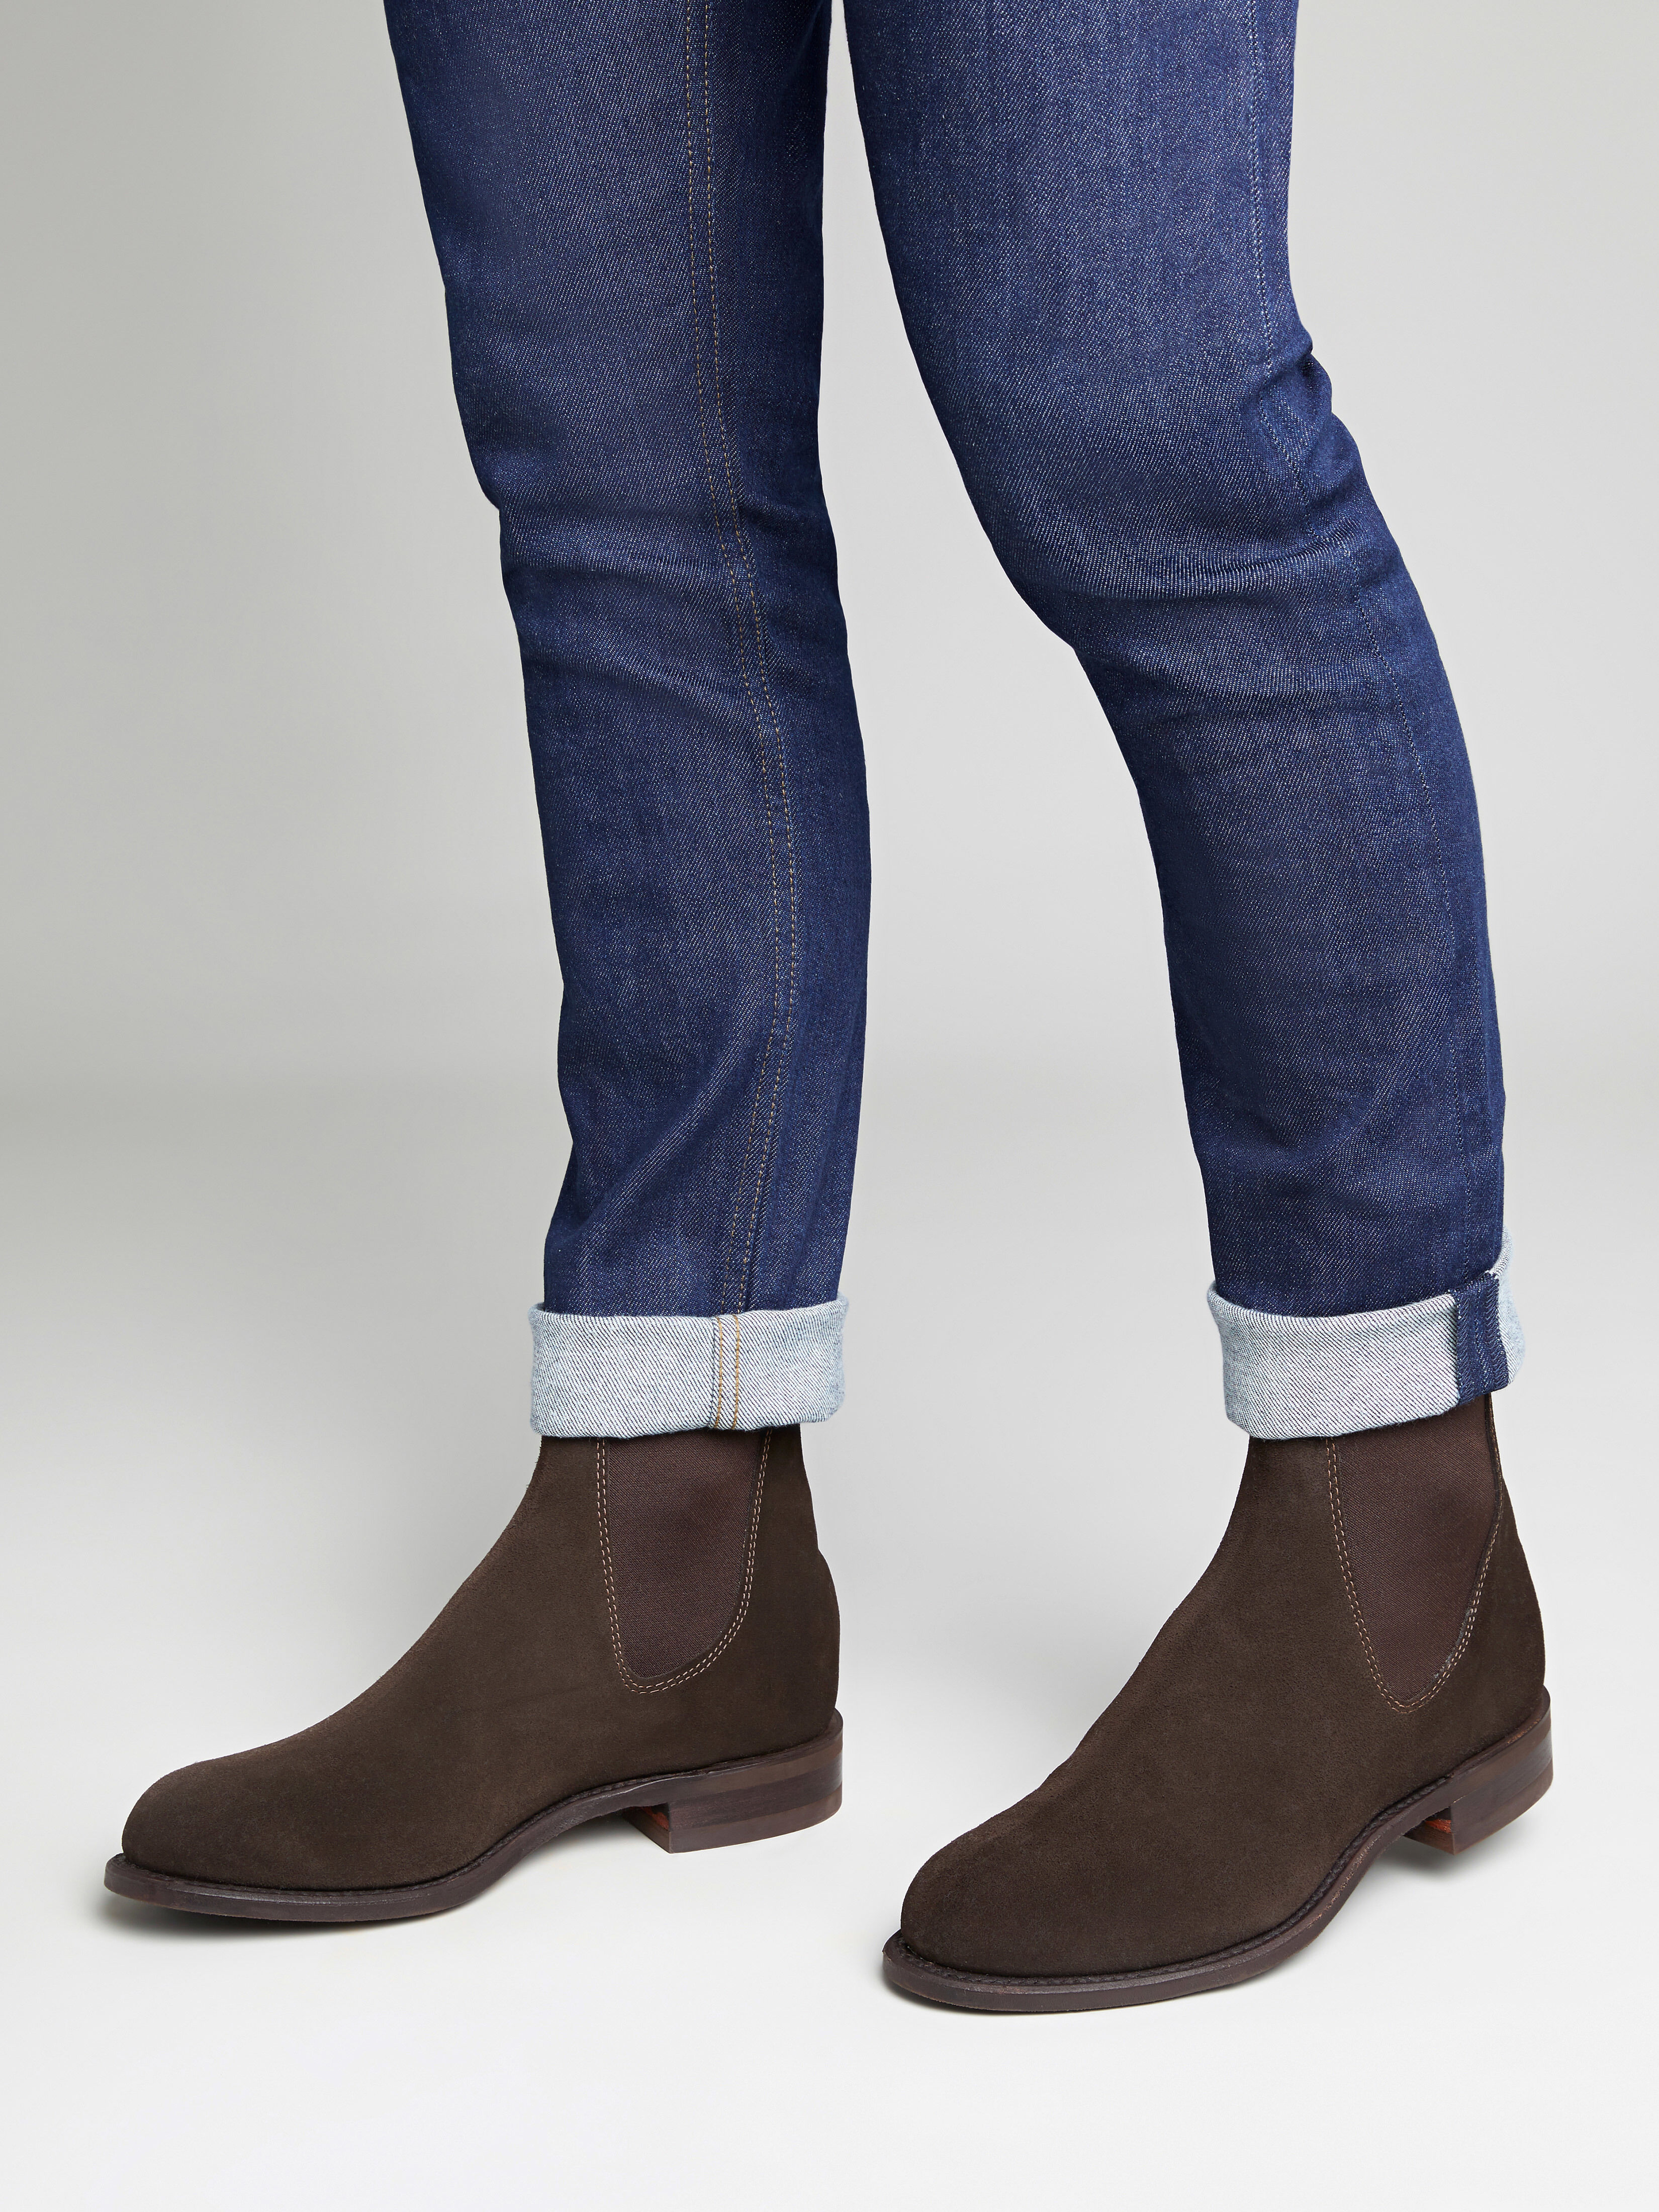 Handcrafted Australian Boots | R.M.Williams®